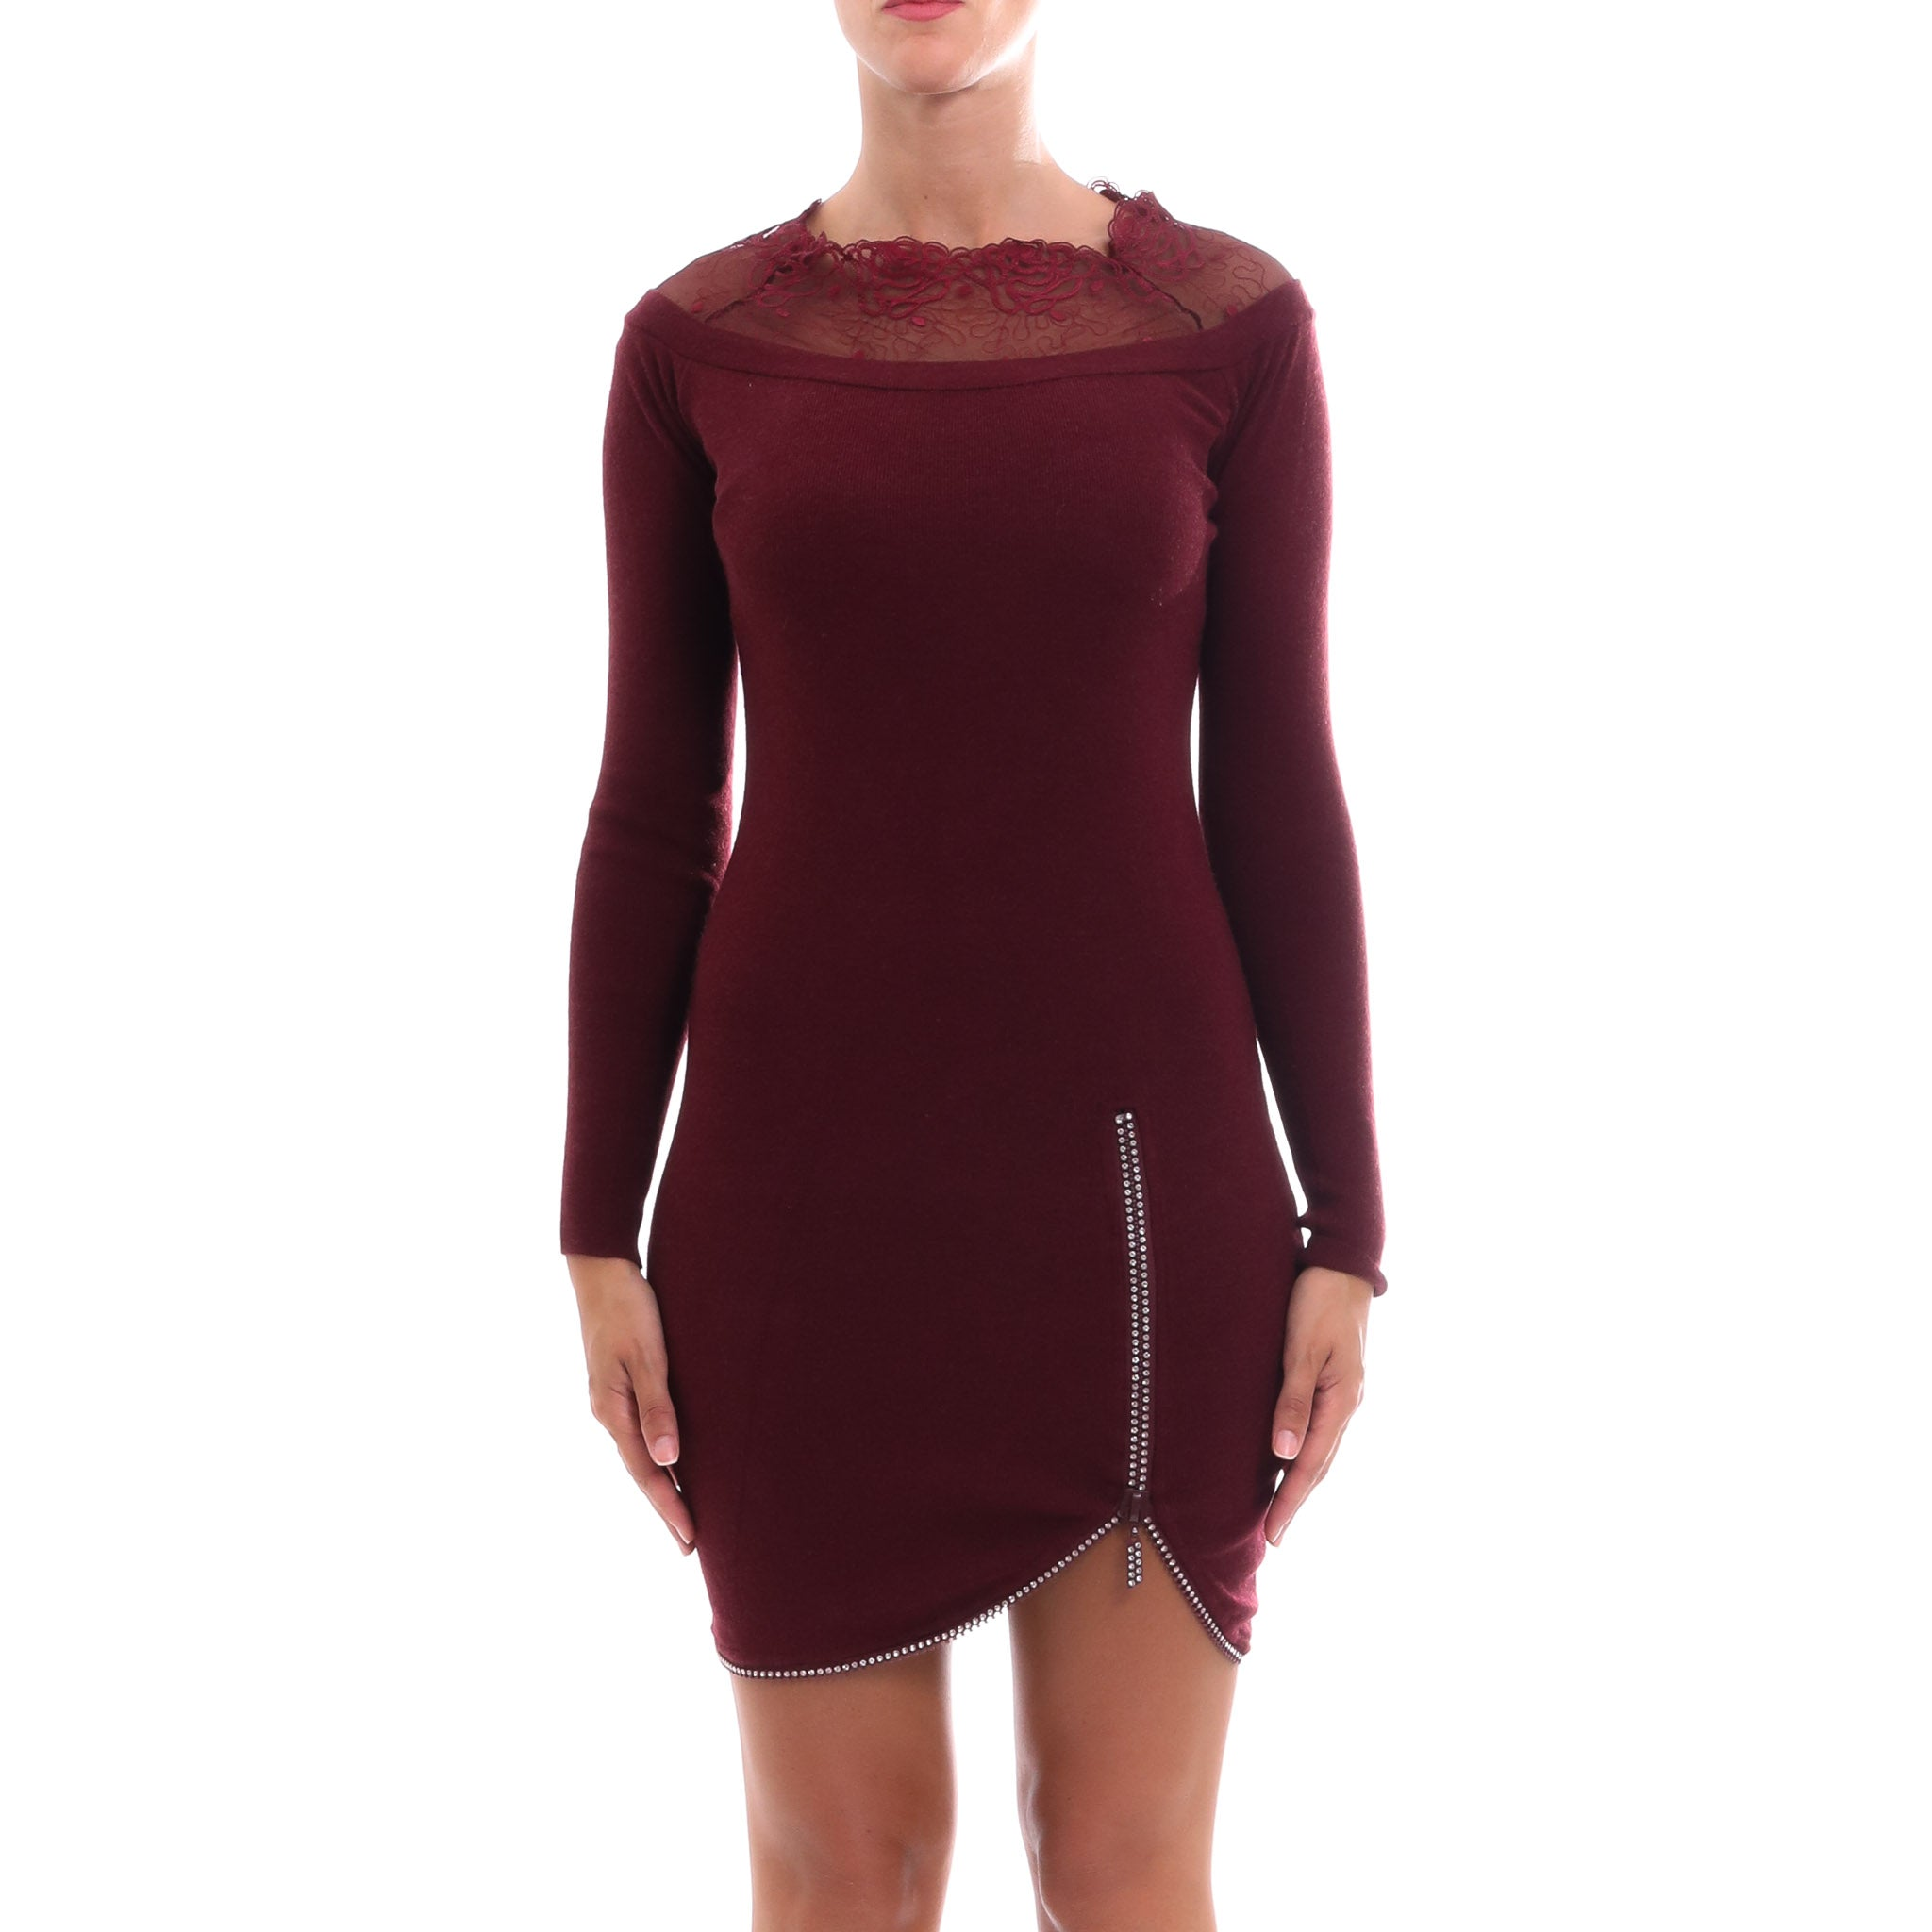 Cashmere Company Knitted Slim Dress